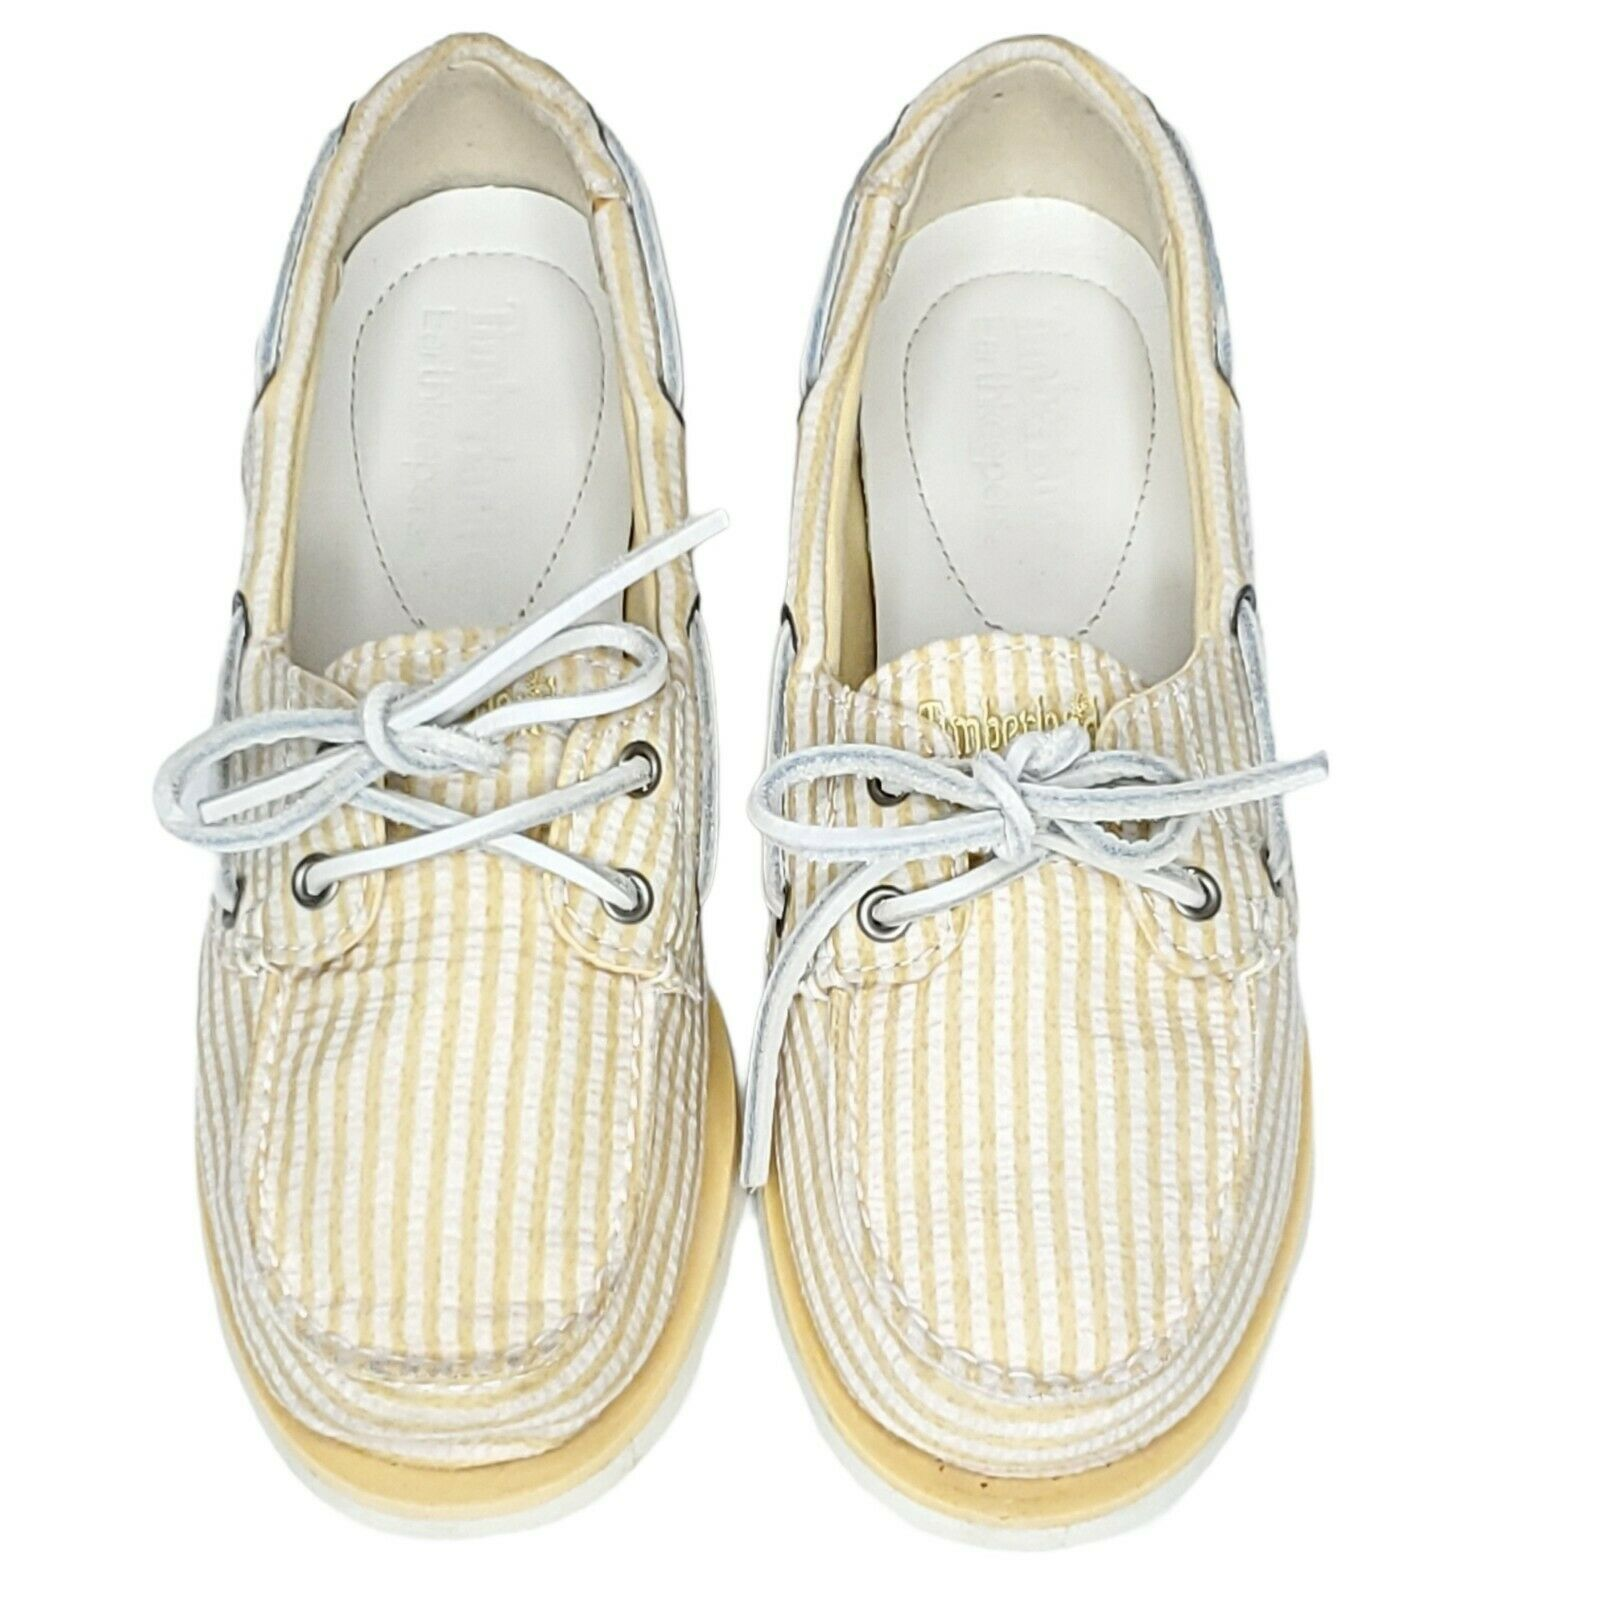 Timberland Earthkeepers Yellow Striped Deck Boat 2 Eye Shoes Women's 7